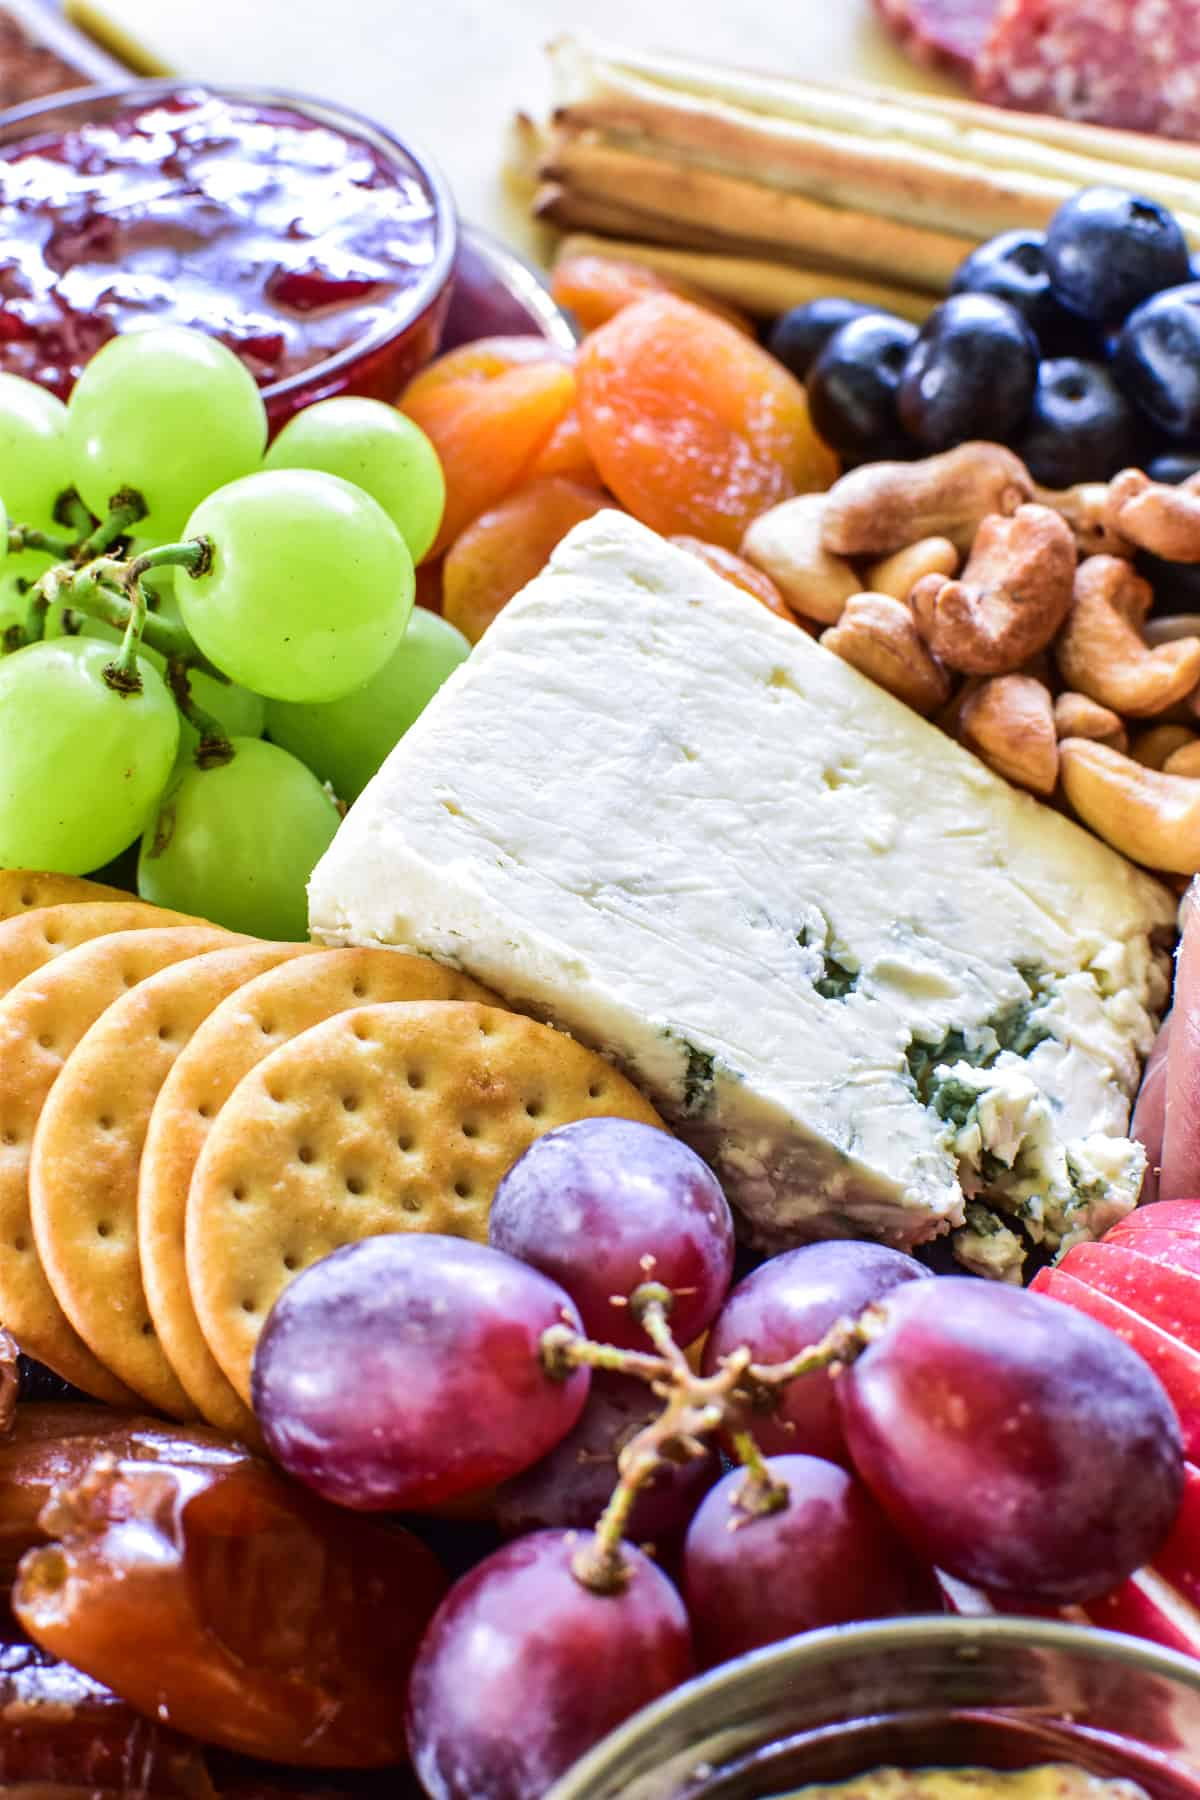 Close up of grapes, cheese, crackers, and more on a charcuterie board